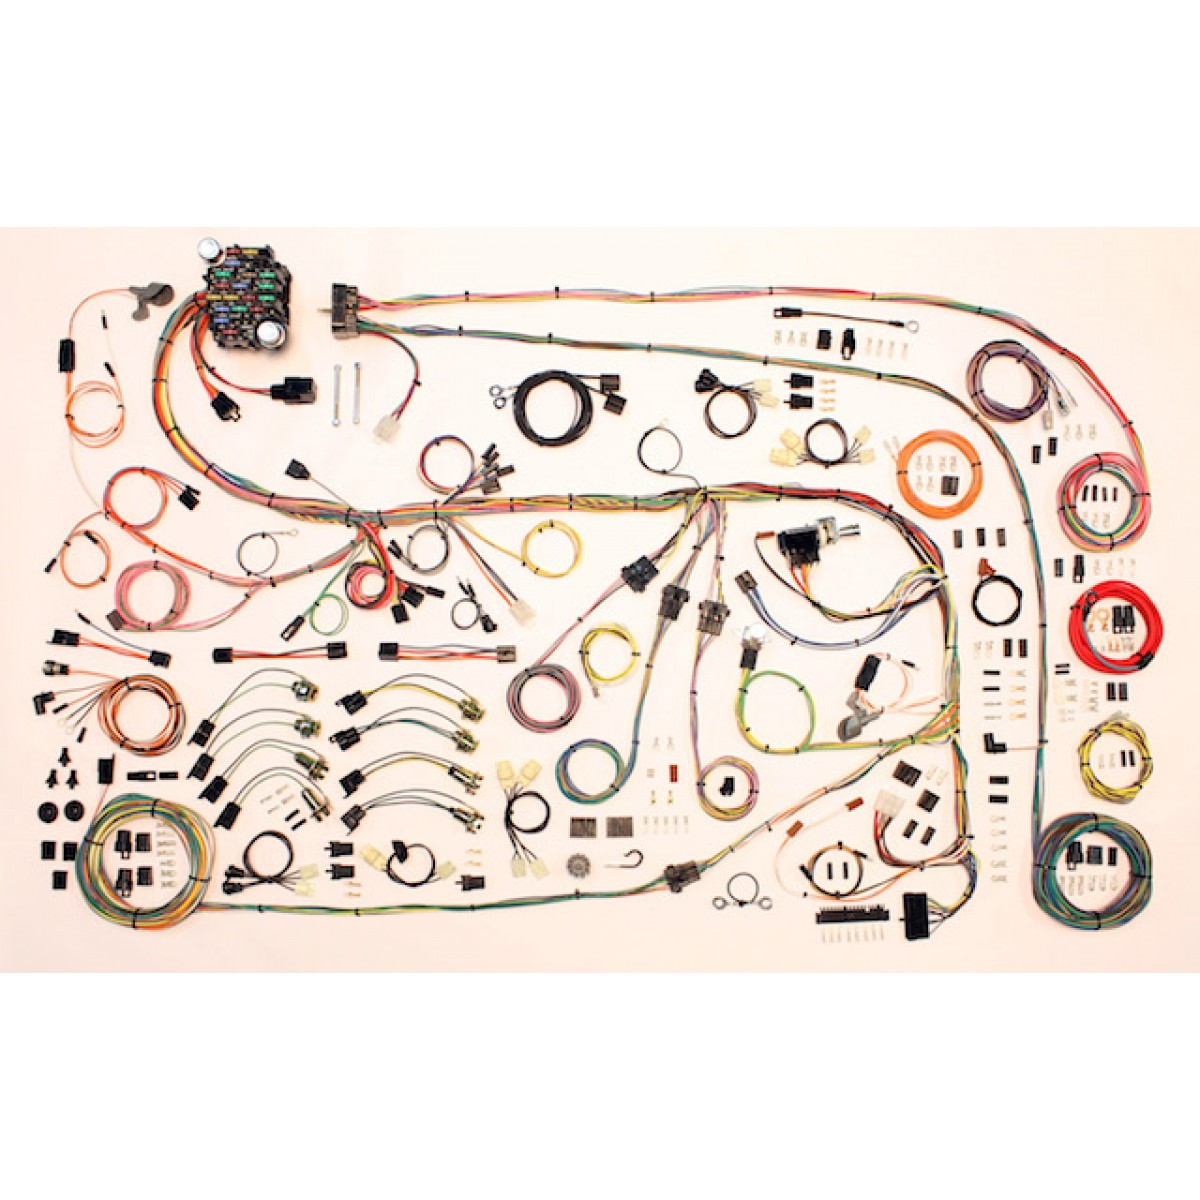 hight resolution of complete wiring harness kit 1967 75 dodge dart part 510603 rh code510 com 1969 dodge charger wiring harness diagram dodge truck wiring harness